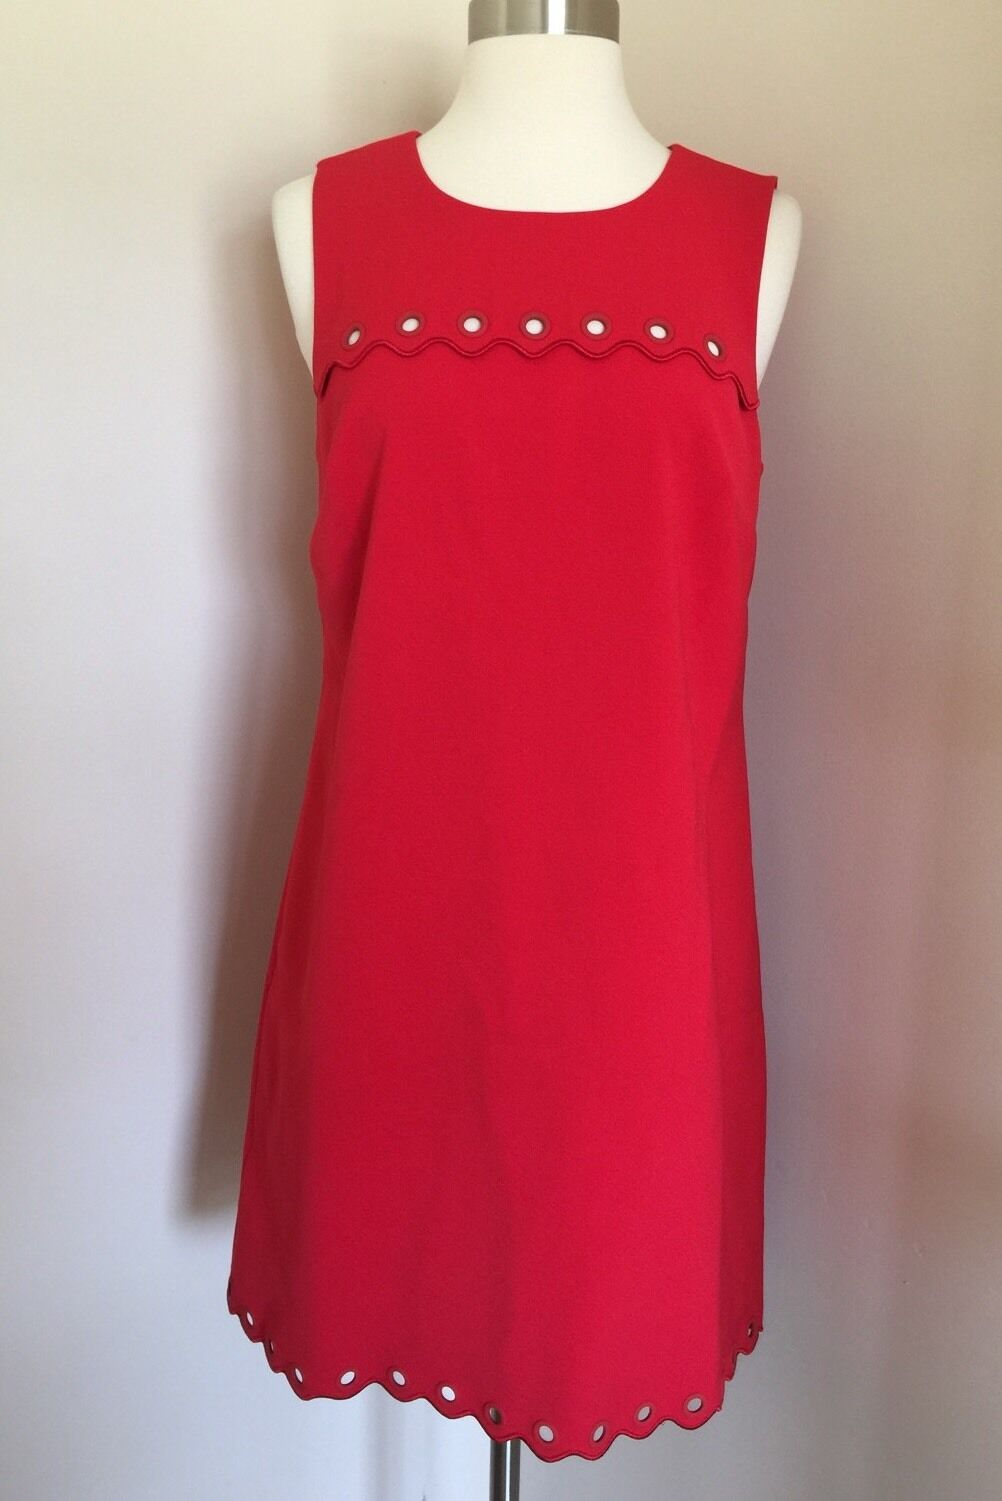 JCrew Electric rot Scalloped Jumper Dress with Grommets 6 Nwt E8902